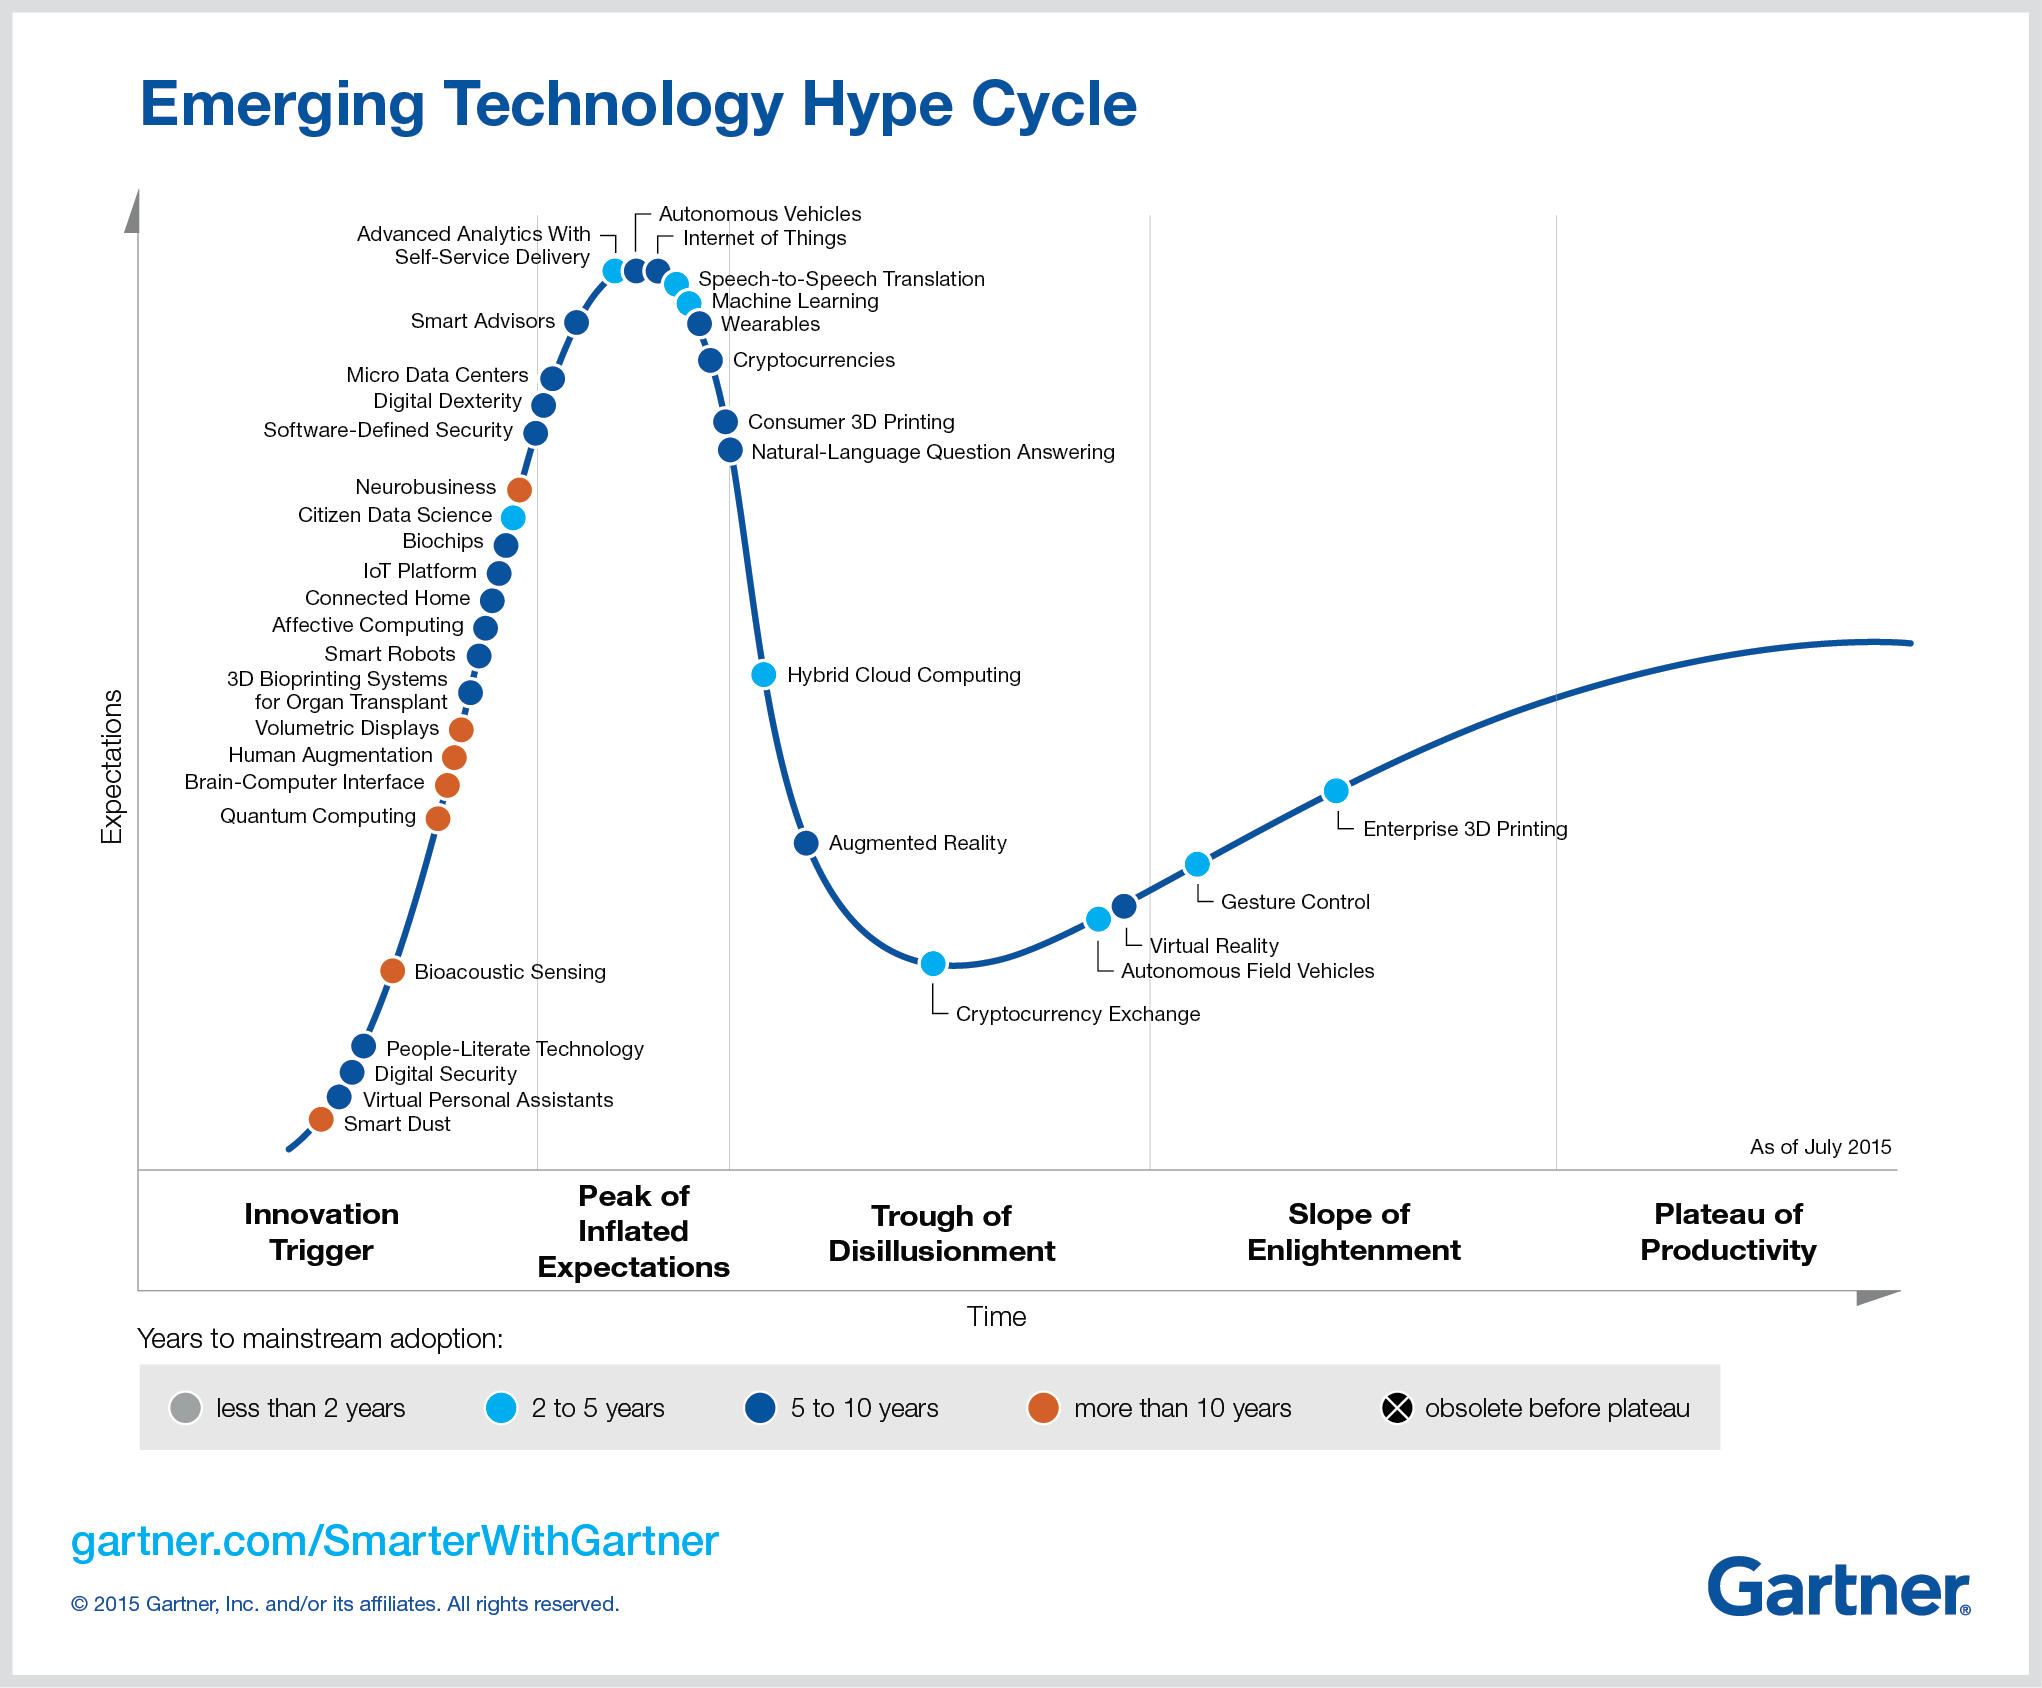 chatbot4devs - hype cycle gartner